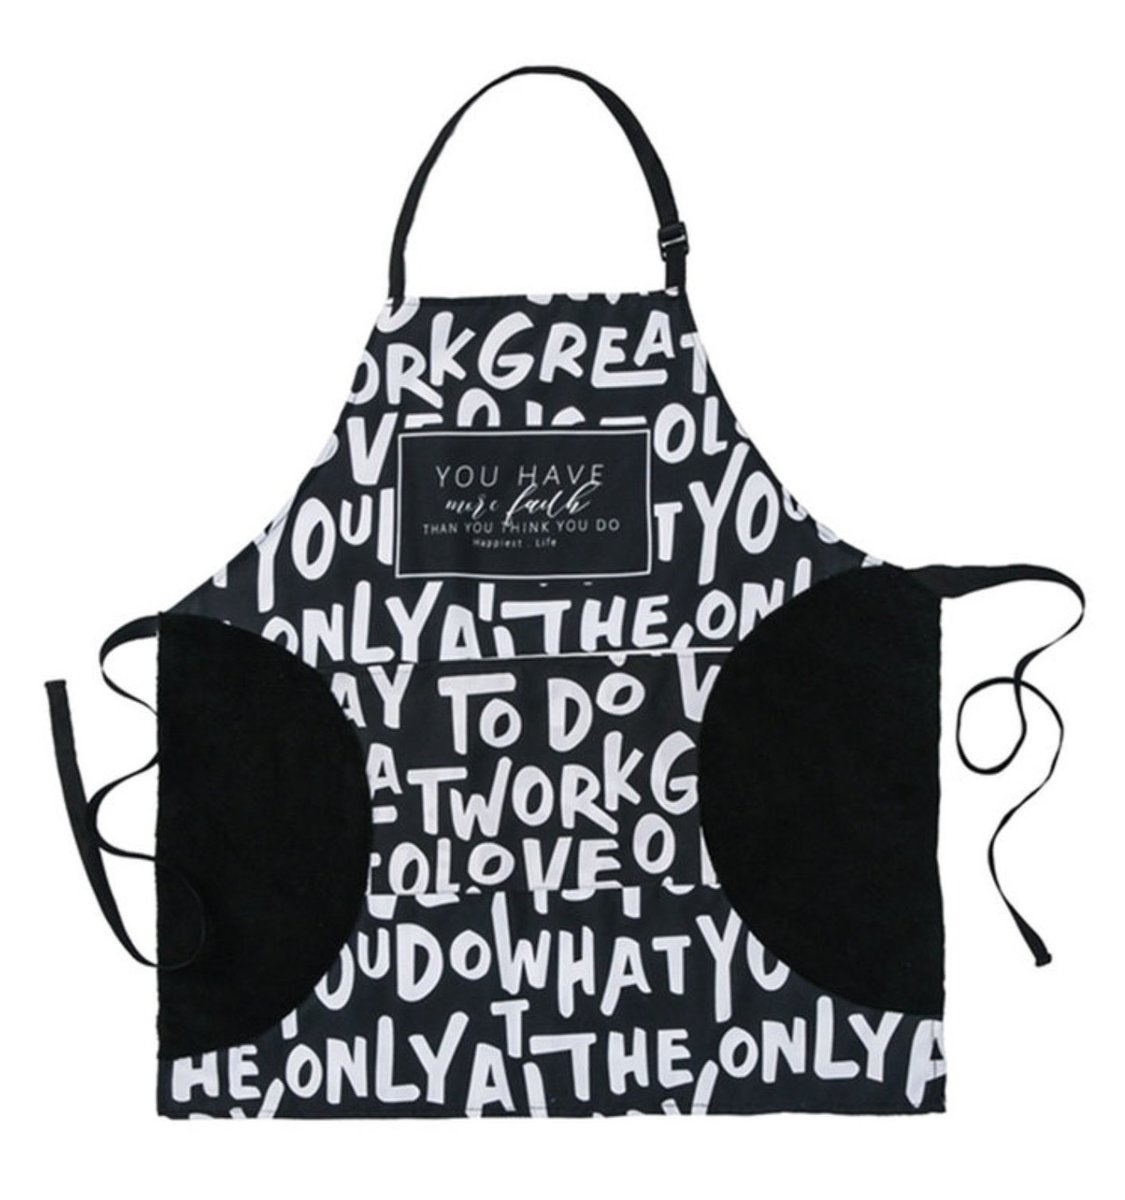 Can wipe the hand waterproof and oil-proof apron - C (alphabet)